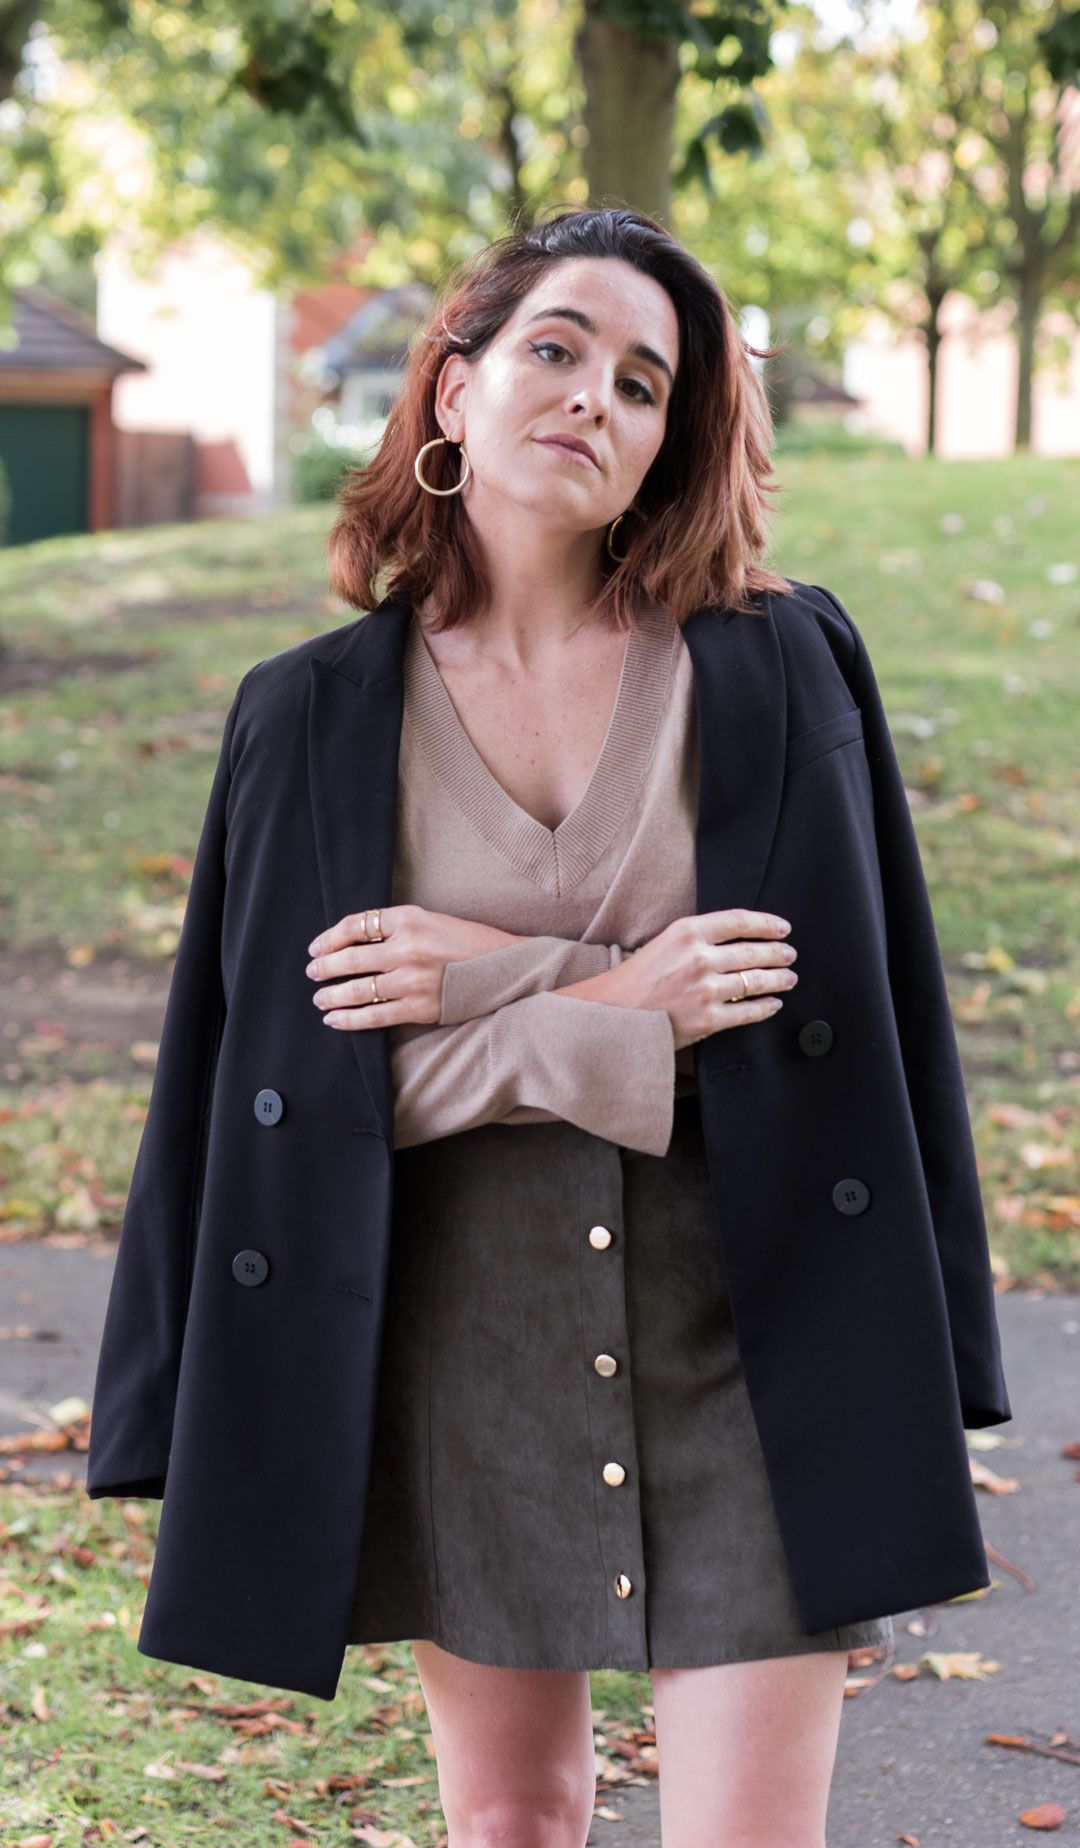 The skirt your wardrobe needs this autumn | Neutral colours | #Autumnfashion | A-line skirt | Olive button down skirt | Blazer season | #blackblazer | #Chicoutfit | #Loafers | How to wear loafers in autumn | #silkscarf | Am I losing myself on the social media labyrinth? | She talks Glam | Saida Antolin | UK blogger | #fallfashion | Urban look | How to wear a blazer | Camel sweater | Camel knit | Slouchy jumper | #LondonStreetstyle | Minimal